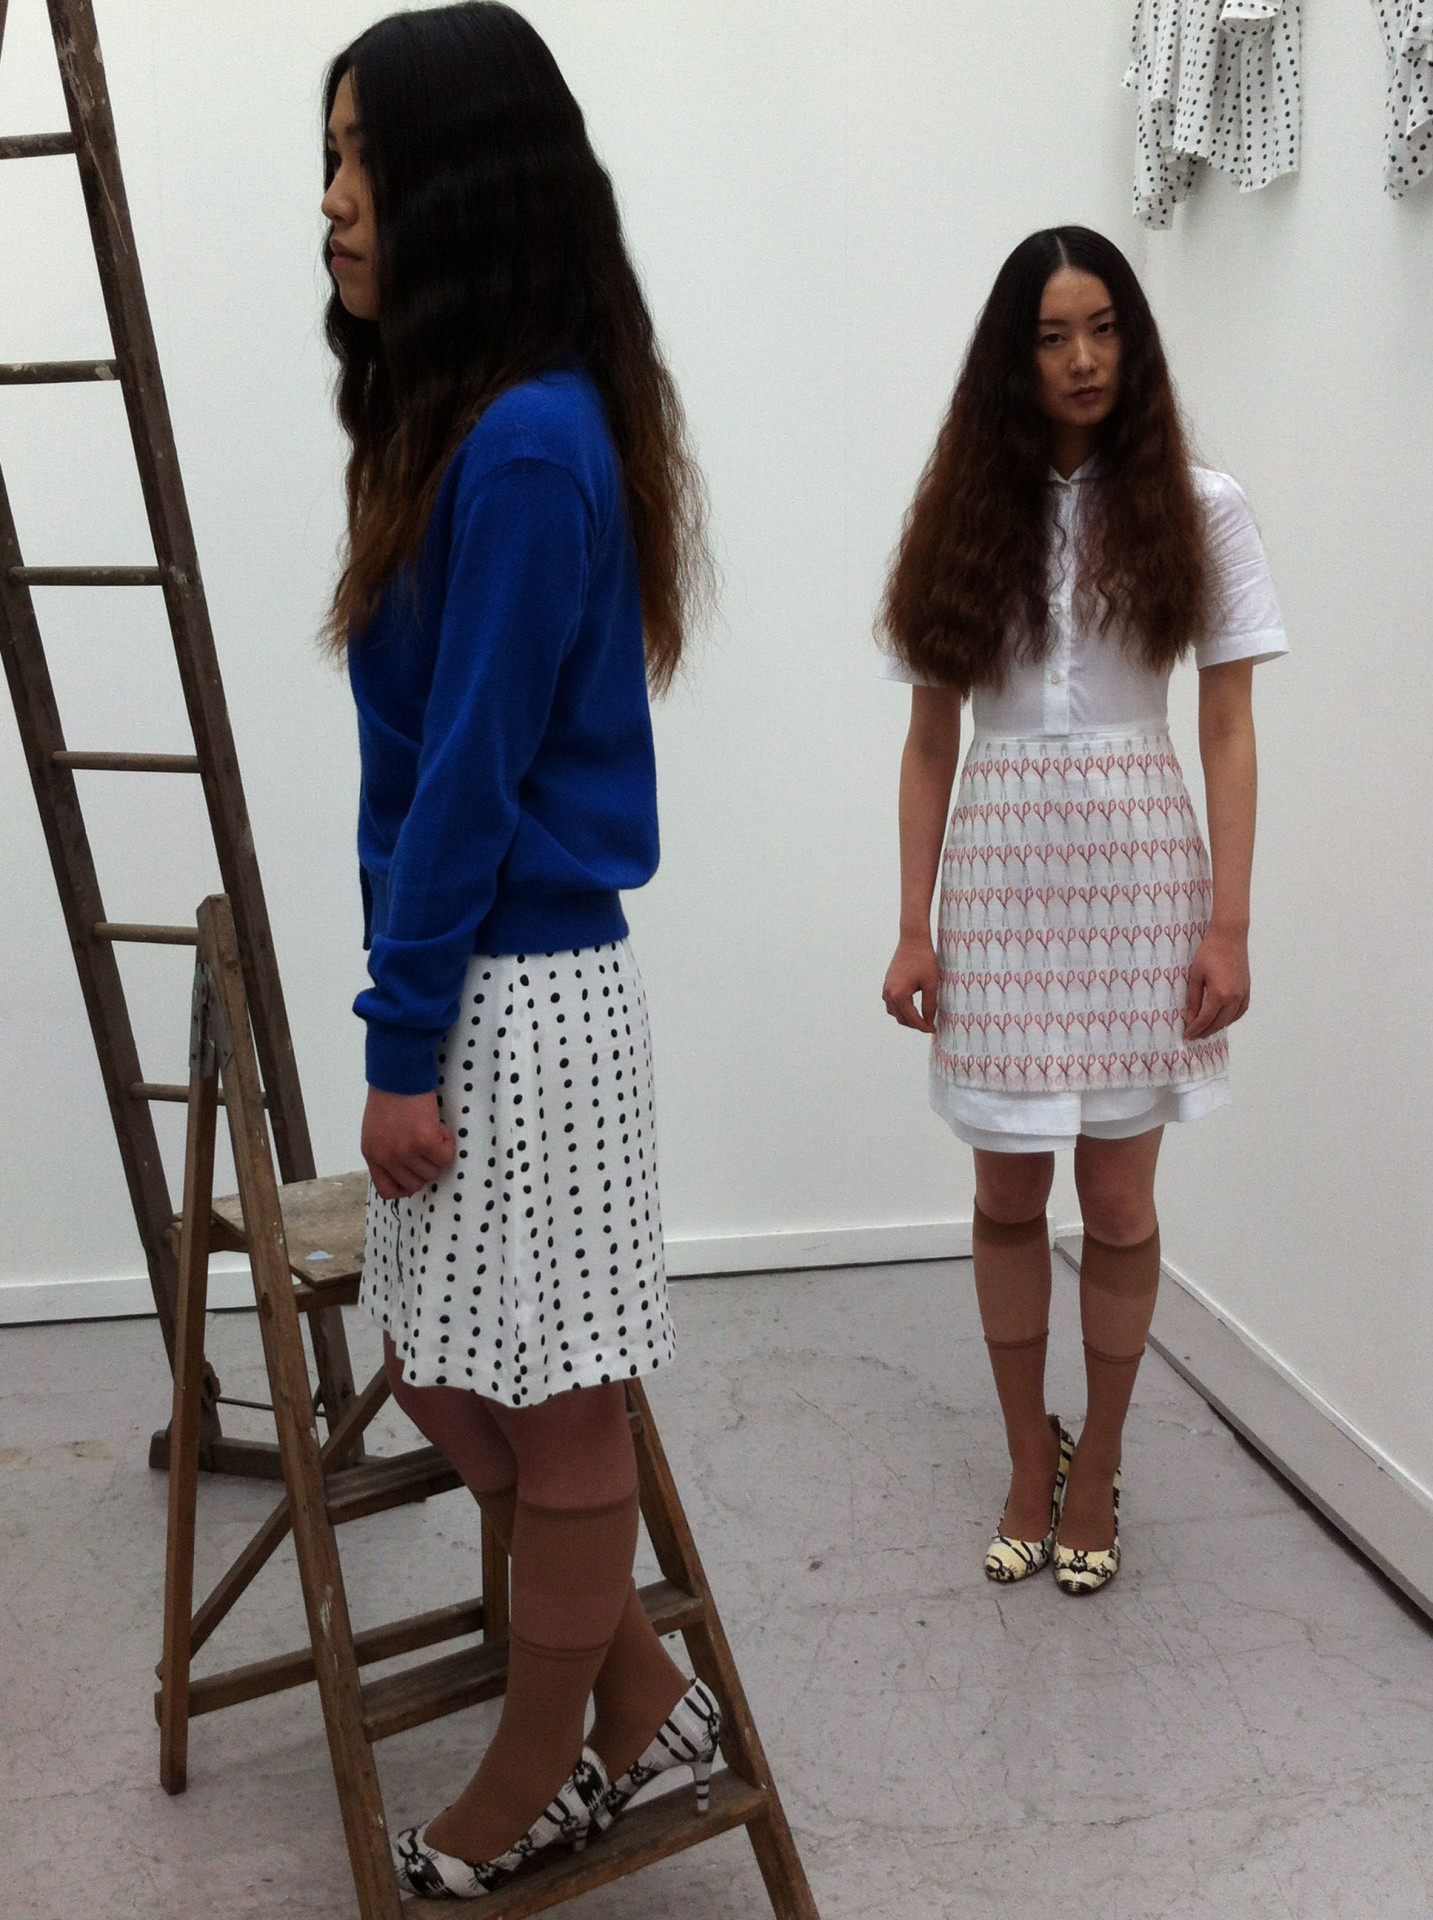 Ono's performance work Cut Piece is the basis for a pencil skirt